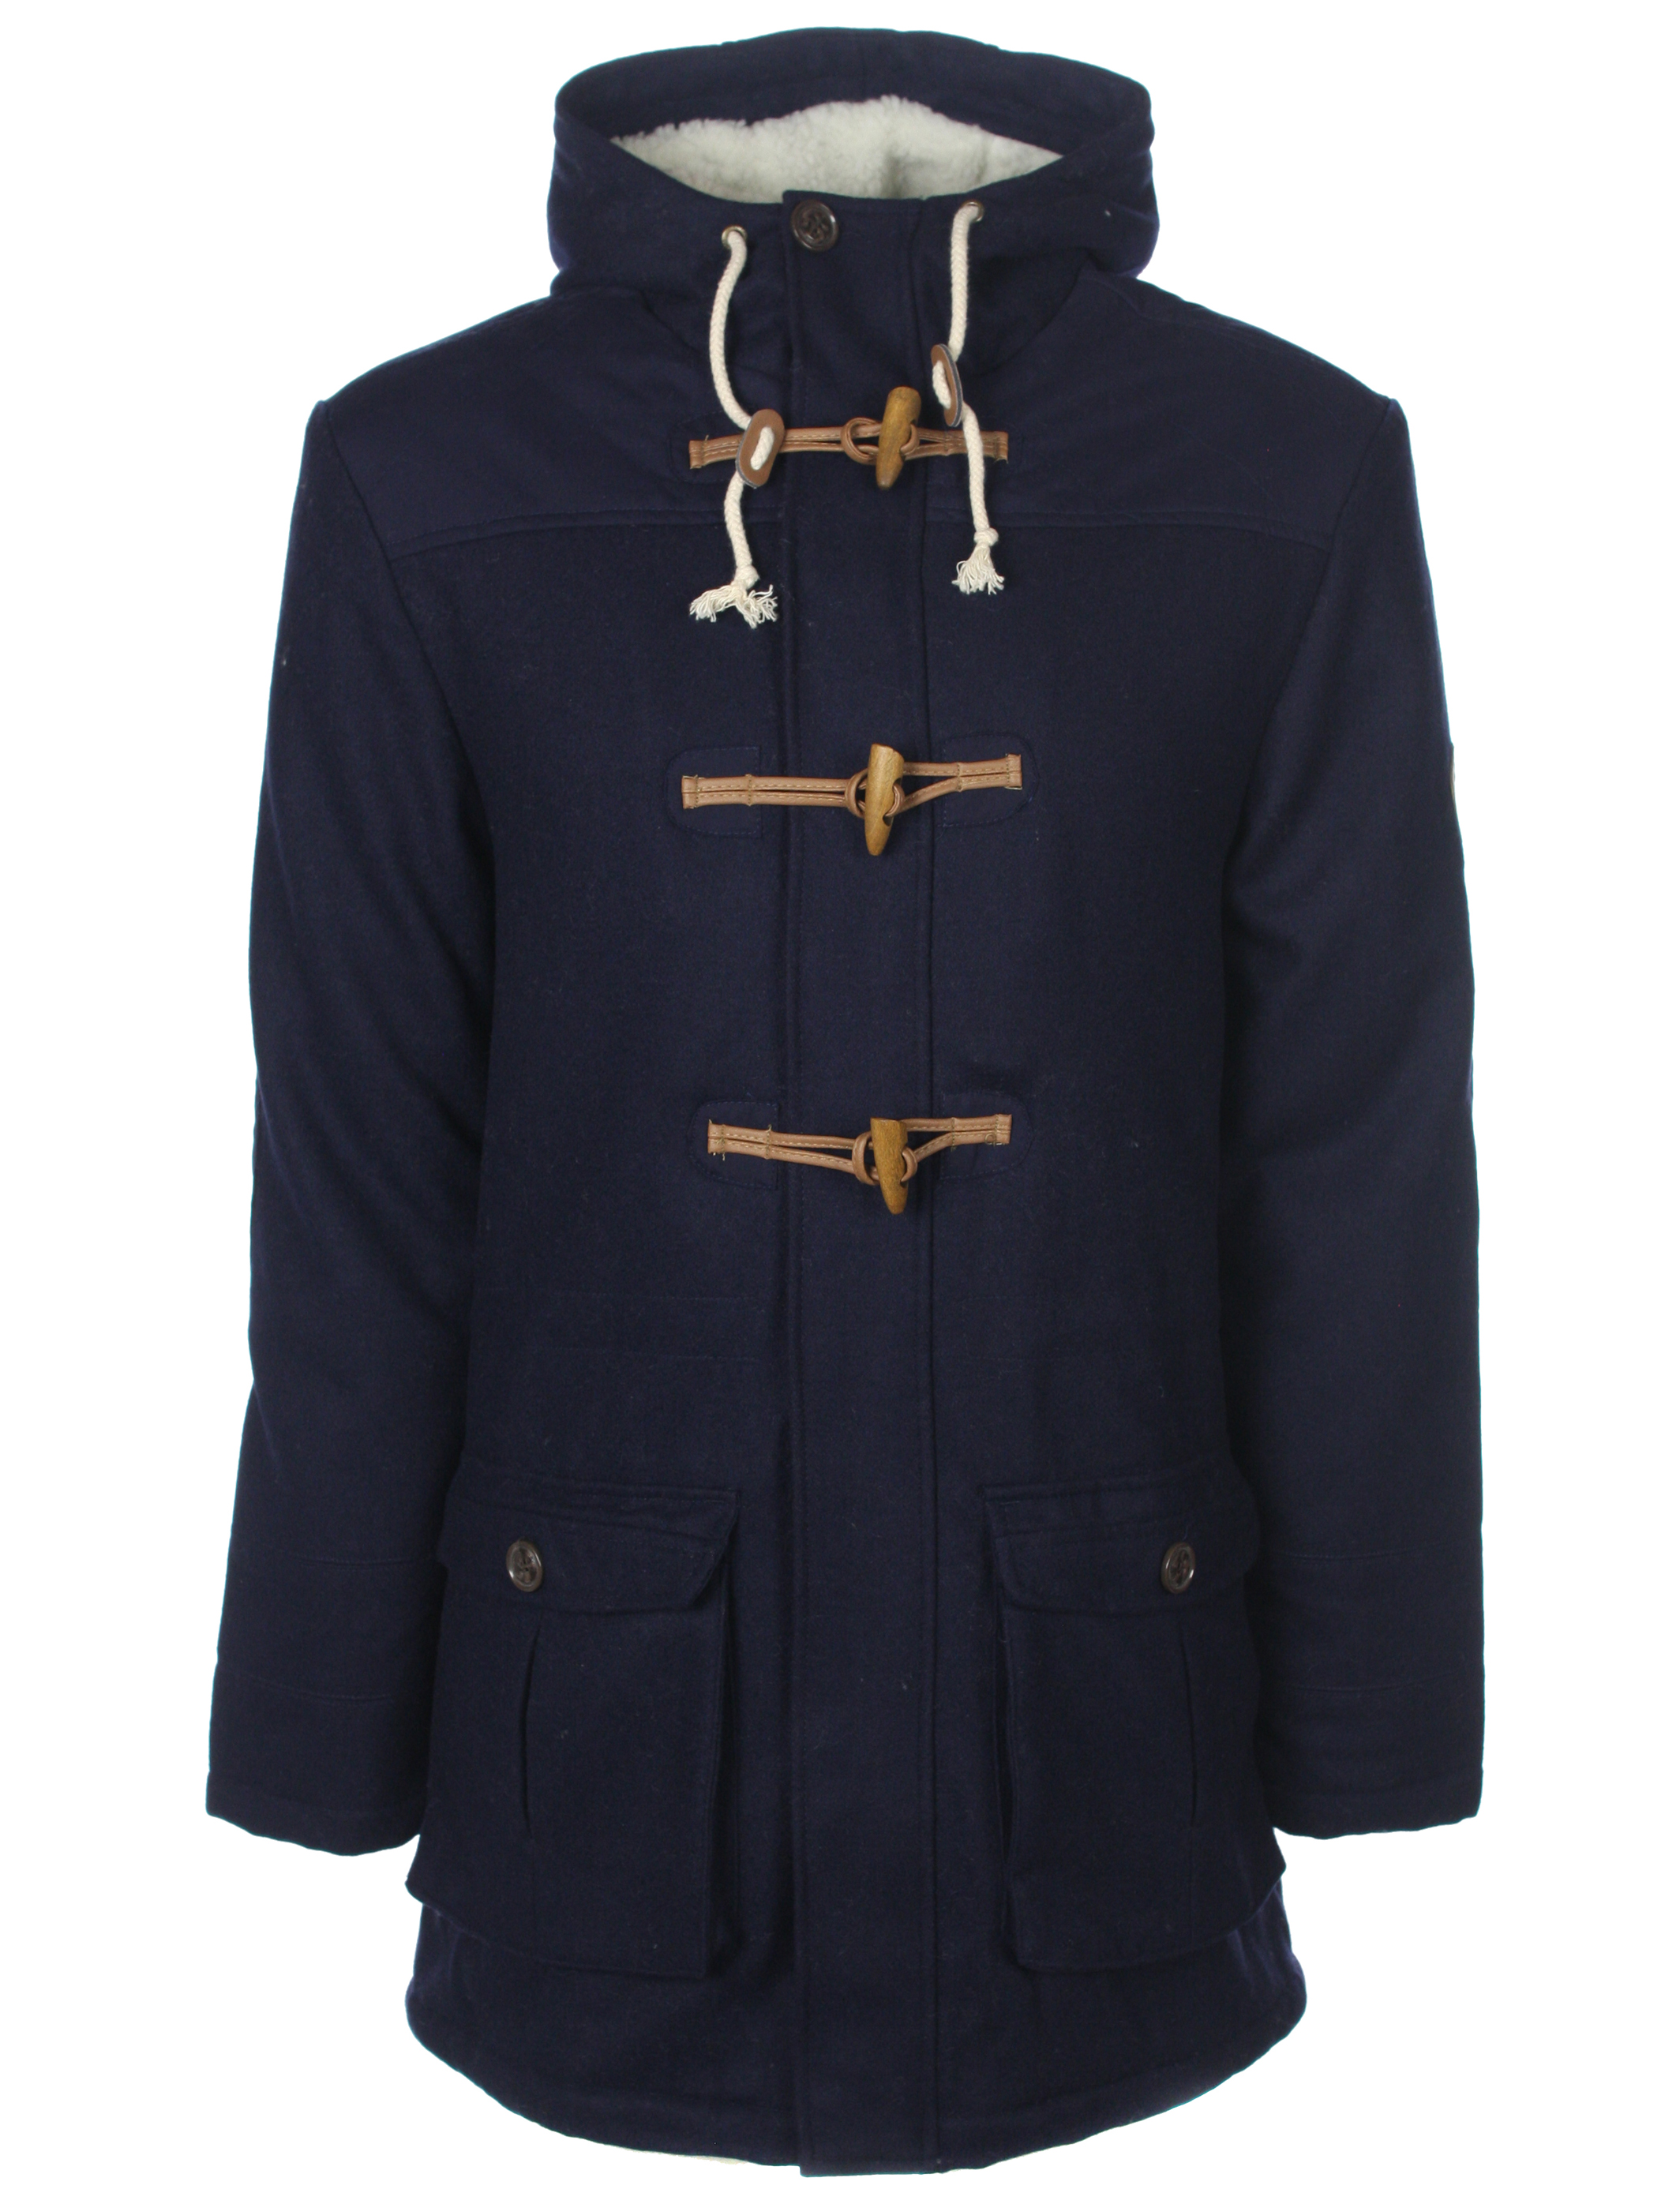 You searched for: navy duffle coat! Etsy is the home to thousands of handmade, vintage, and one-of-a-kind products and gifts related to your search. No matter what you're looking for or where you are in the world, our global marketplace of sellers can help you find unique and affordable options. Let's get started!